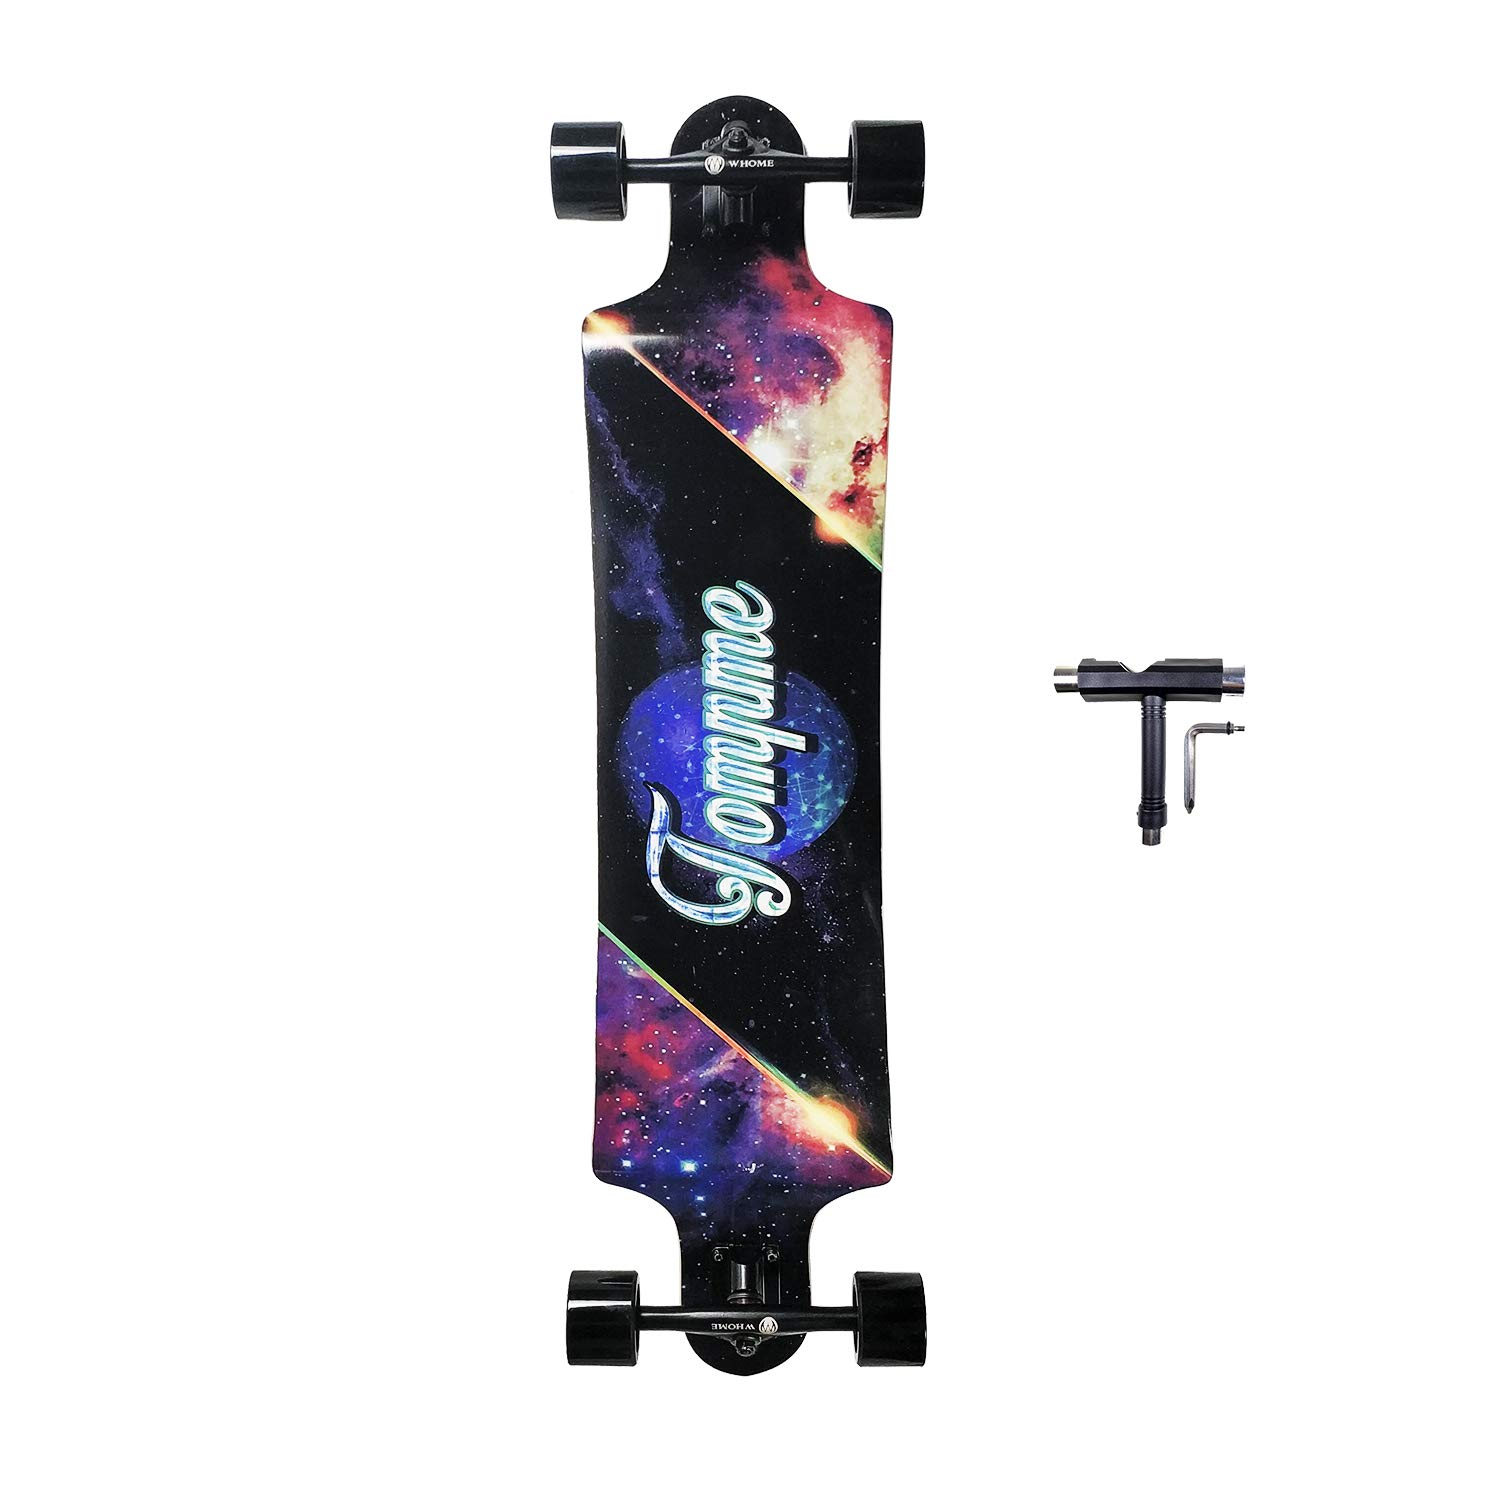 SHINPORT 10x41 Inch Freeride Longboard Skateboard Drop Down for Downhill Cruising Carving Freeride Freestyle